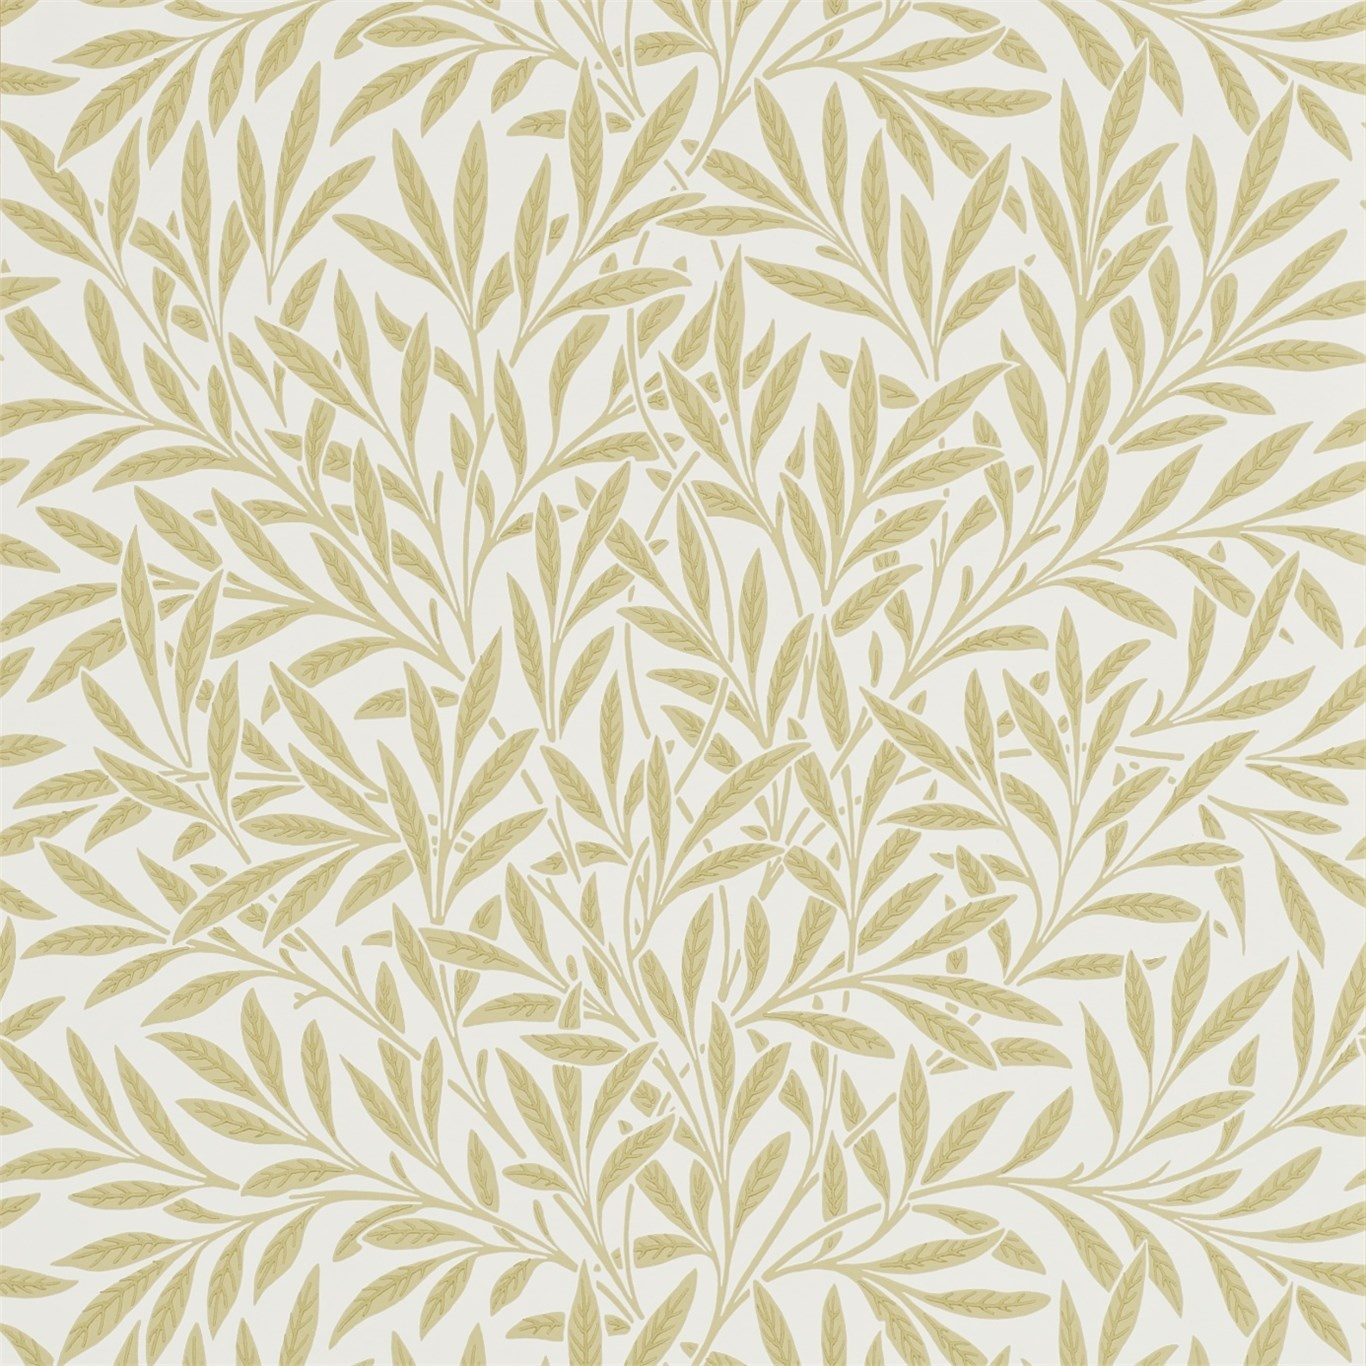 Image of Morris & Co Willow Camomile Wallpaper 210384